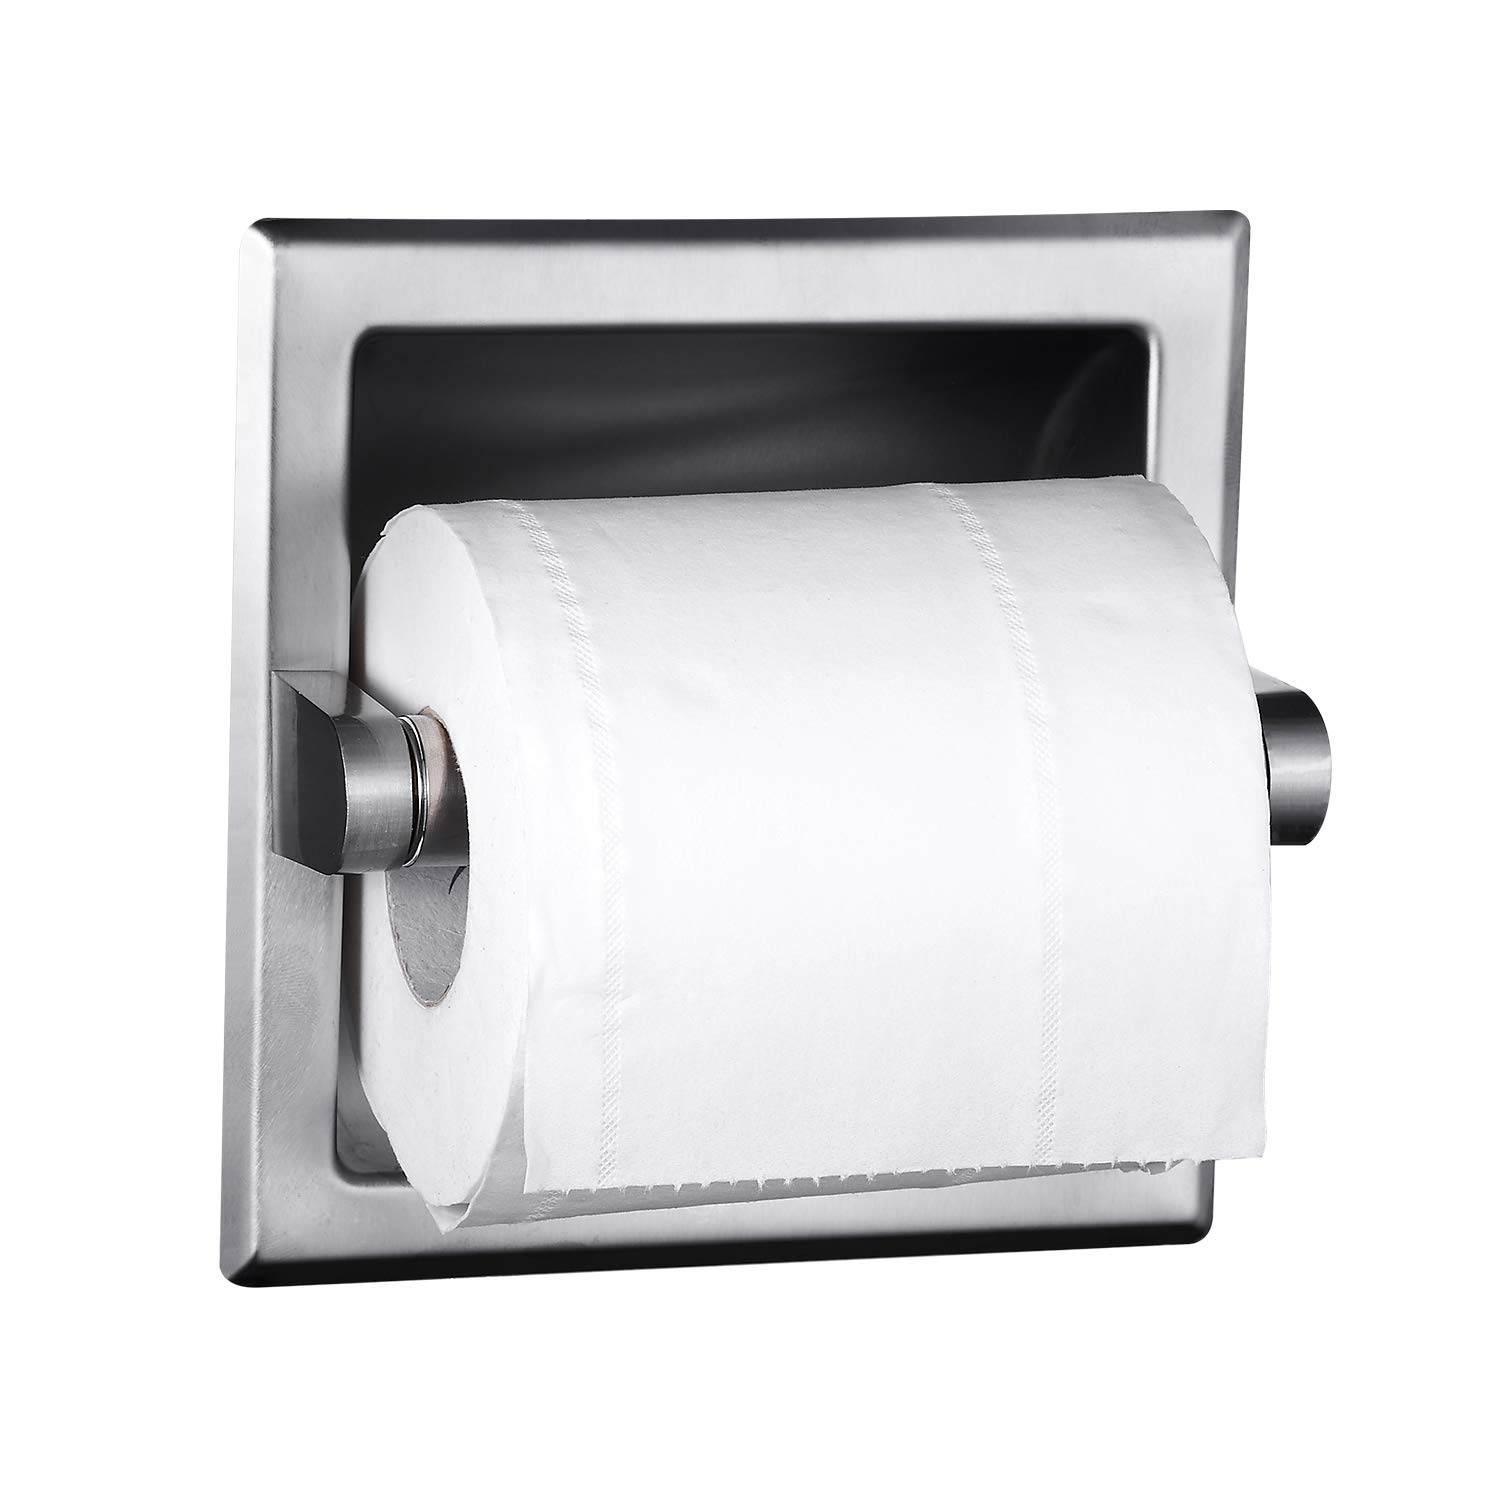 POKIM Black Recessed Toilet Paper Holder//Tissue Paper Holder Stainless Steel Toilet Paper Holder in Wall for Bathroom Accessories Rear Mounting Bracket Included